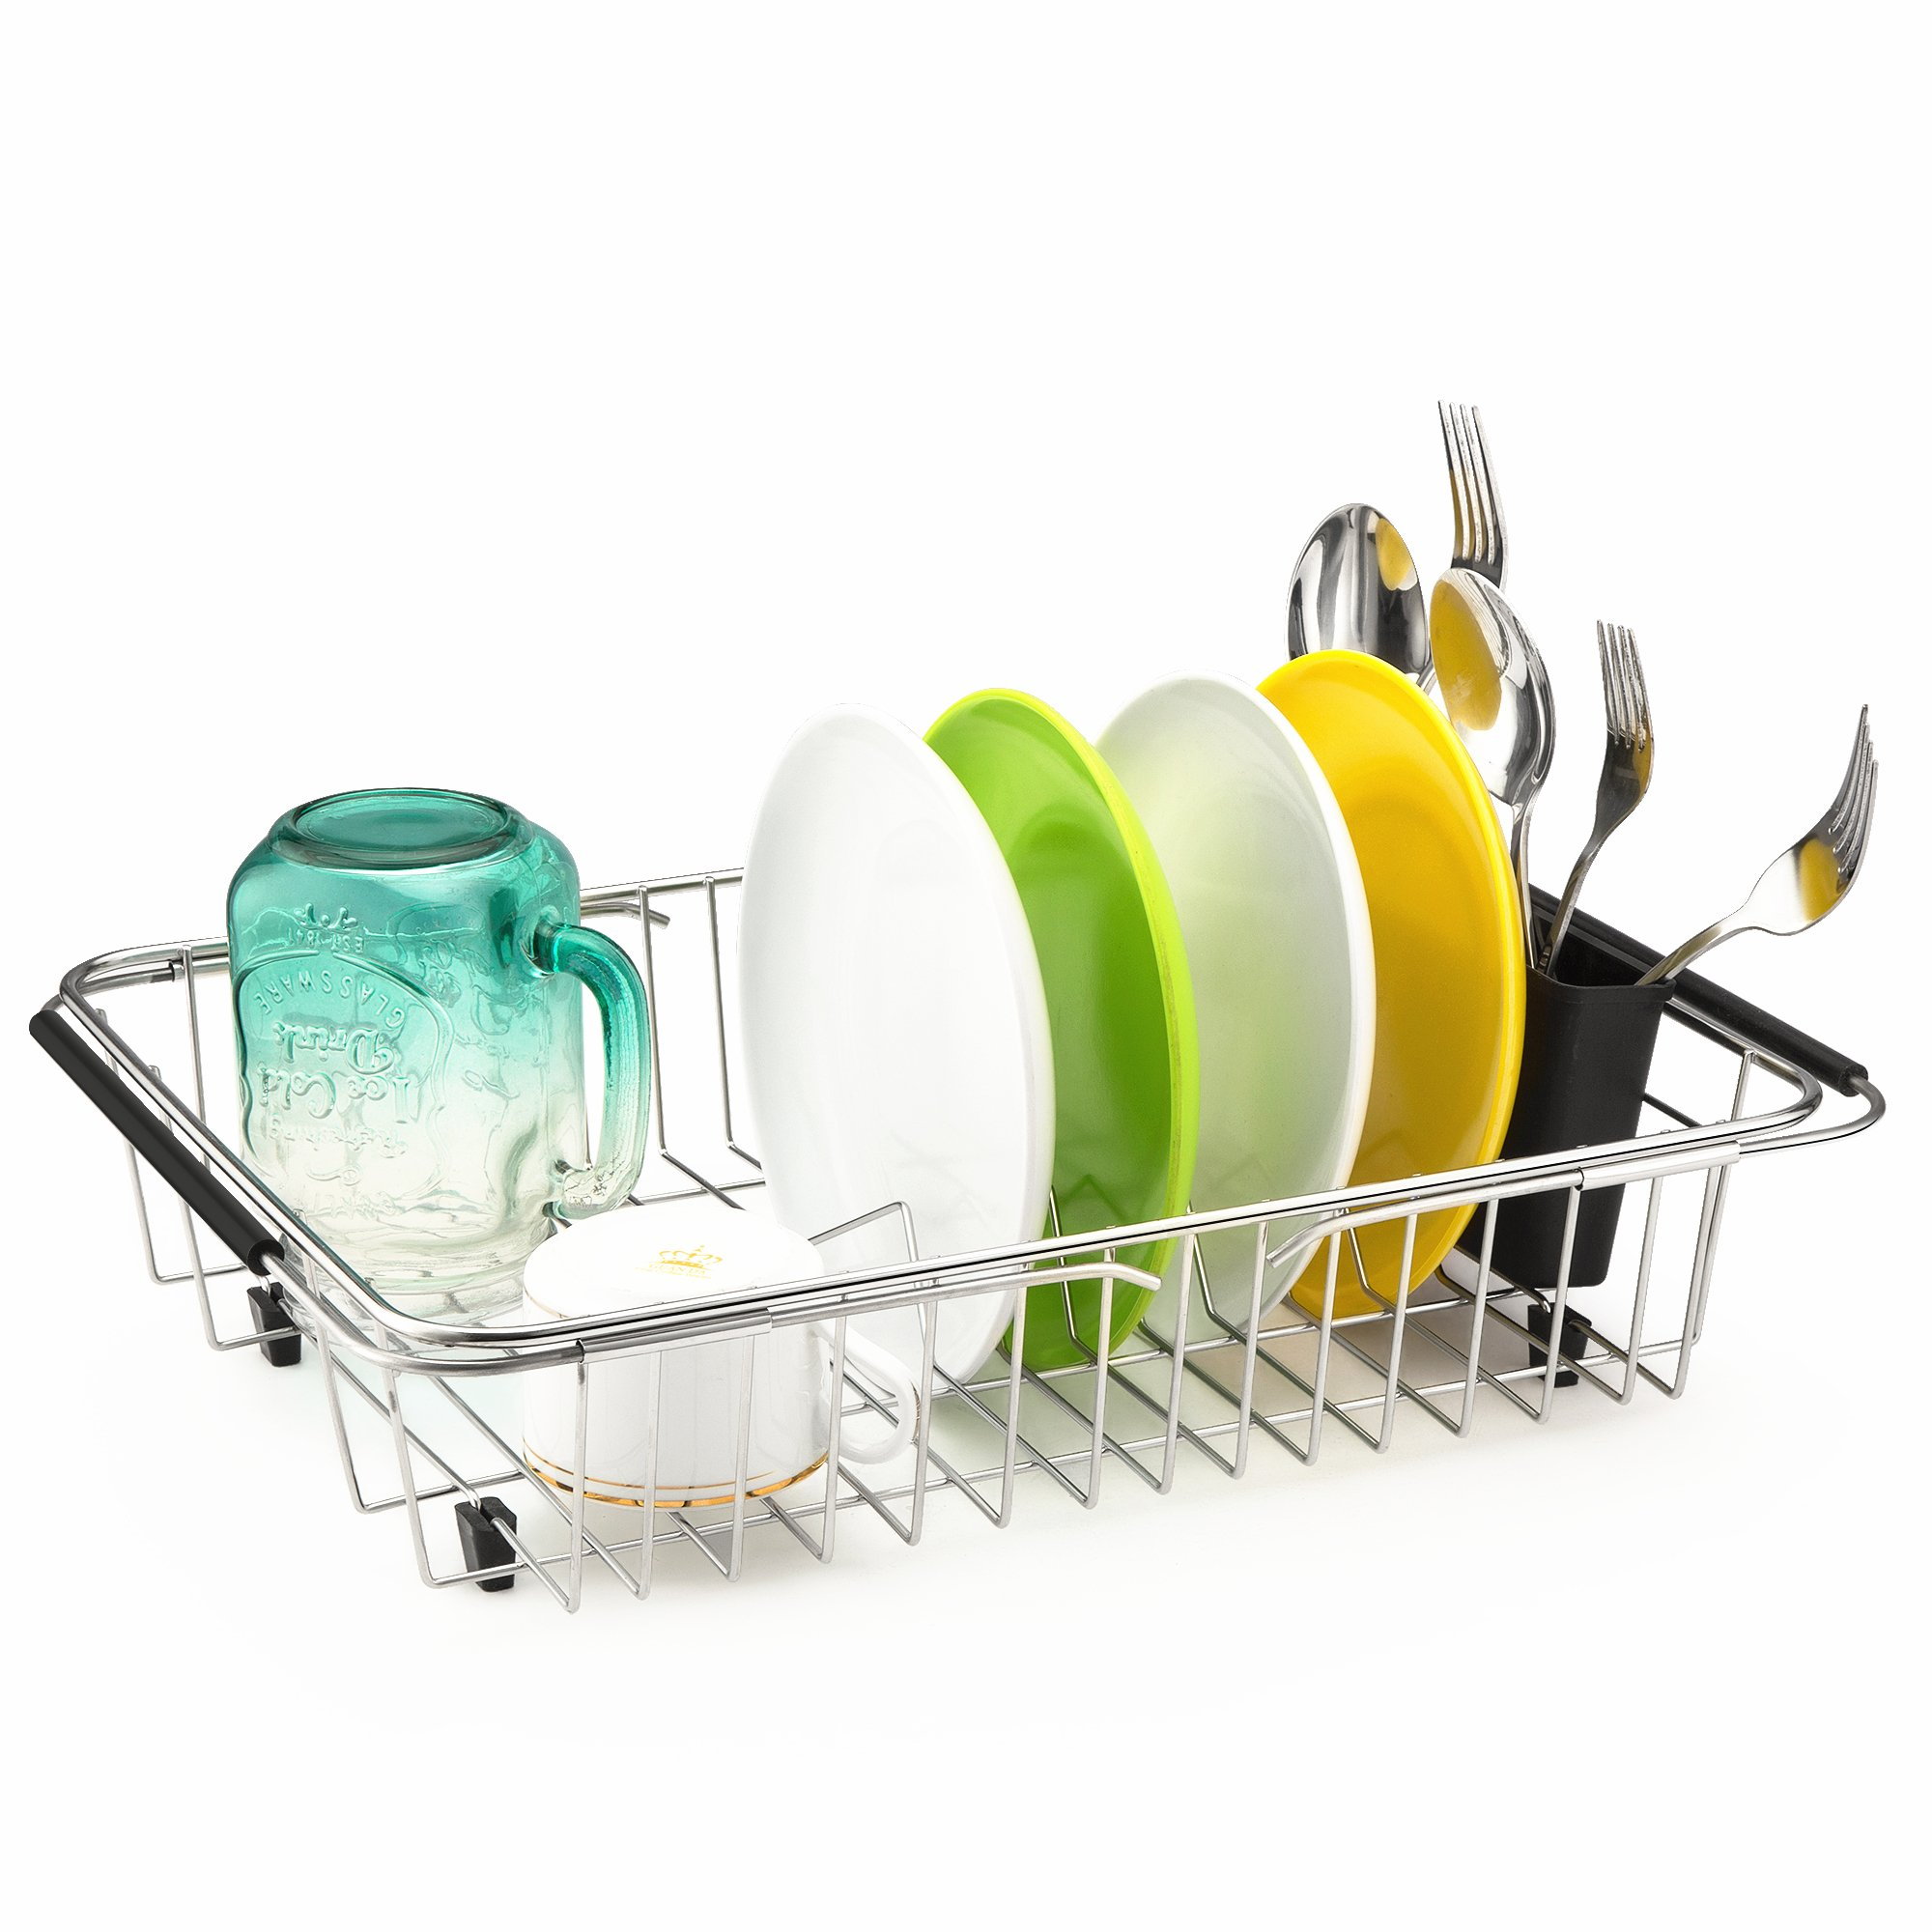 iPEGTOP Adjustable Dish Drying Rack, Over the Sink, In Sink Or On Counter Dish Drainer with Removable Utensil Holder, Rustproof Stainless Steel